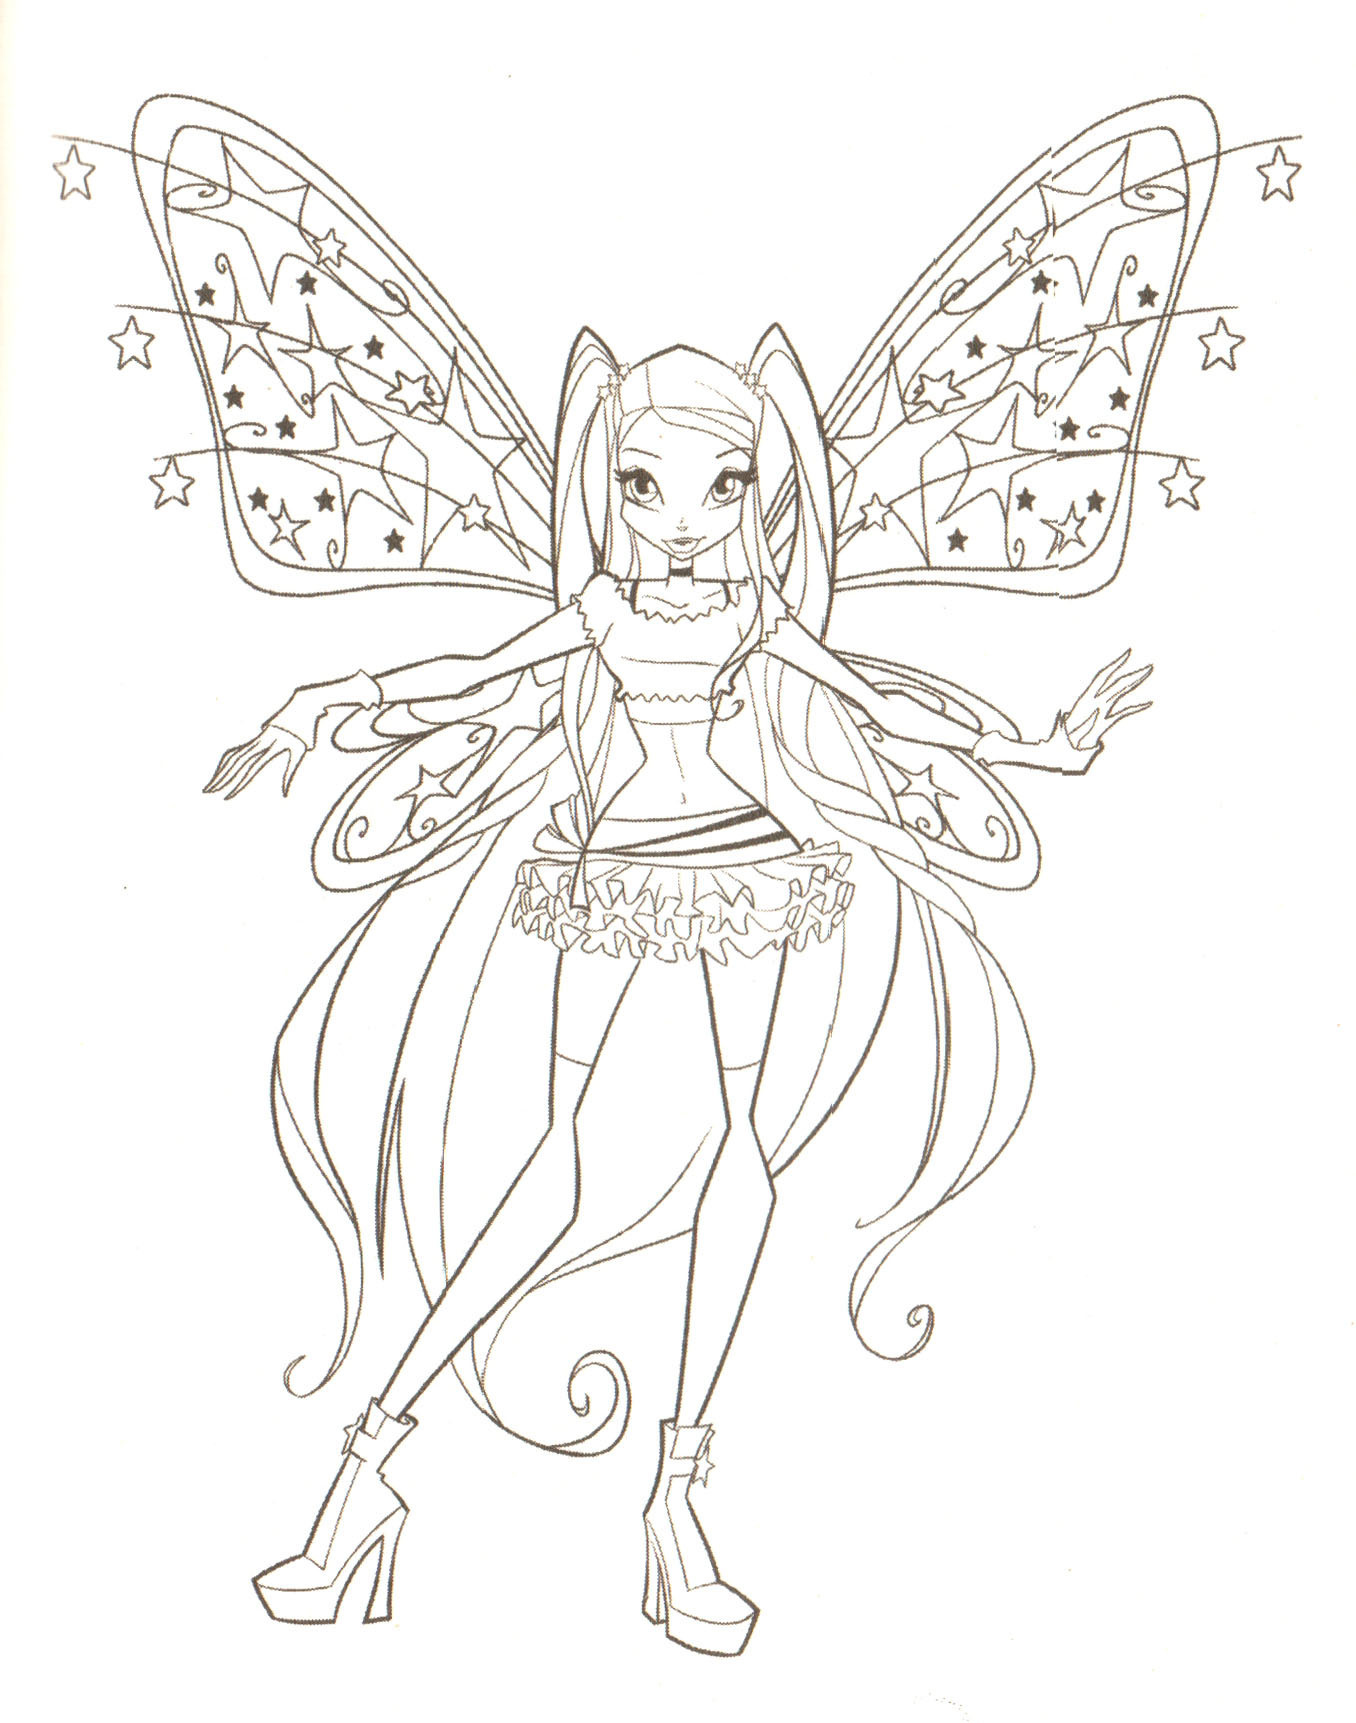 Musa - transformation sirenix coloring pages - Hellokids.com | 1723x1356